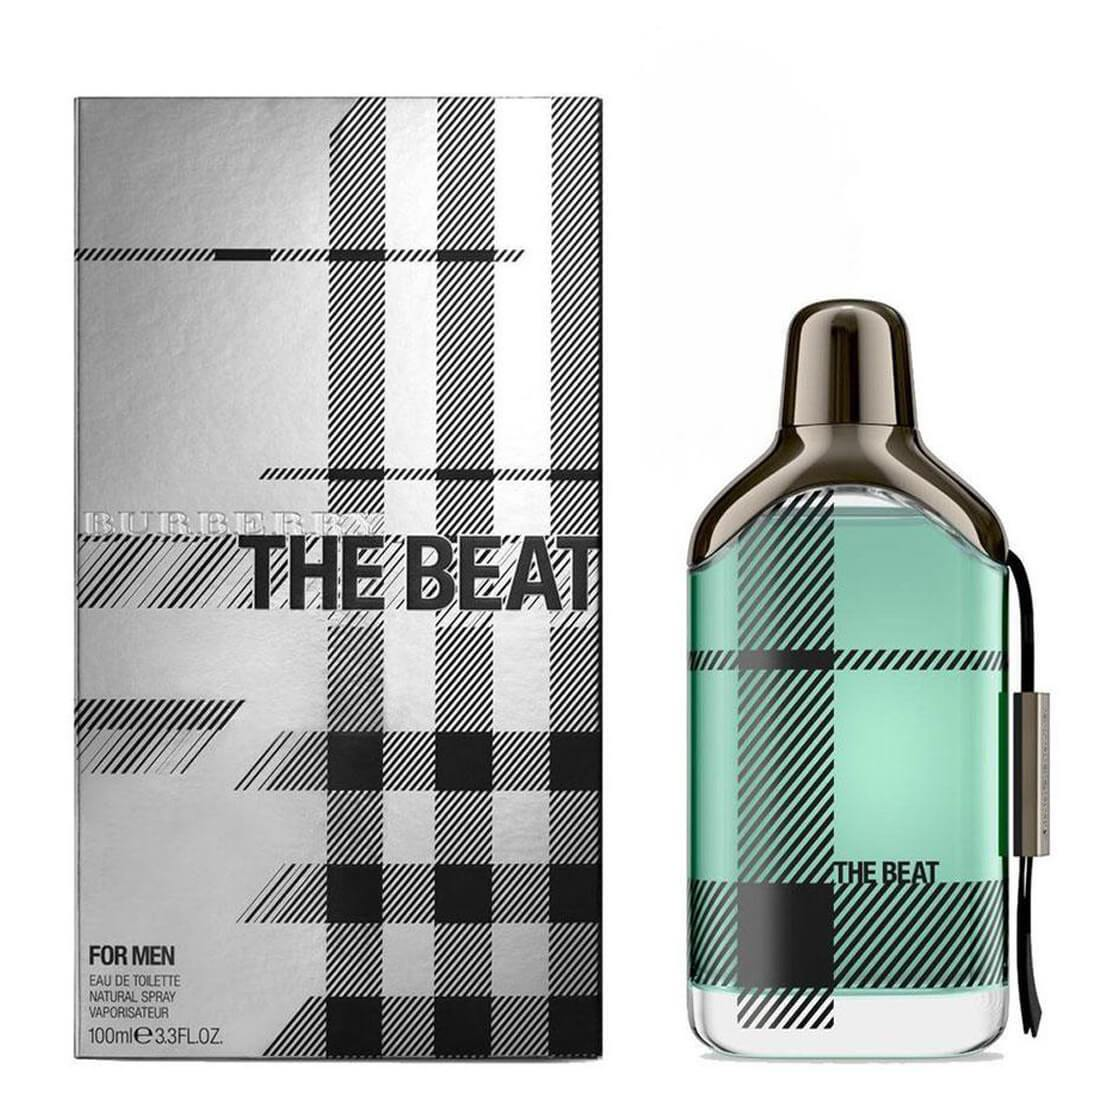 Burberry The Beat Perfume For men -100ml